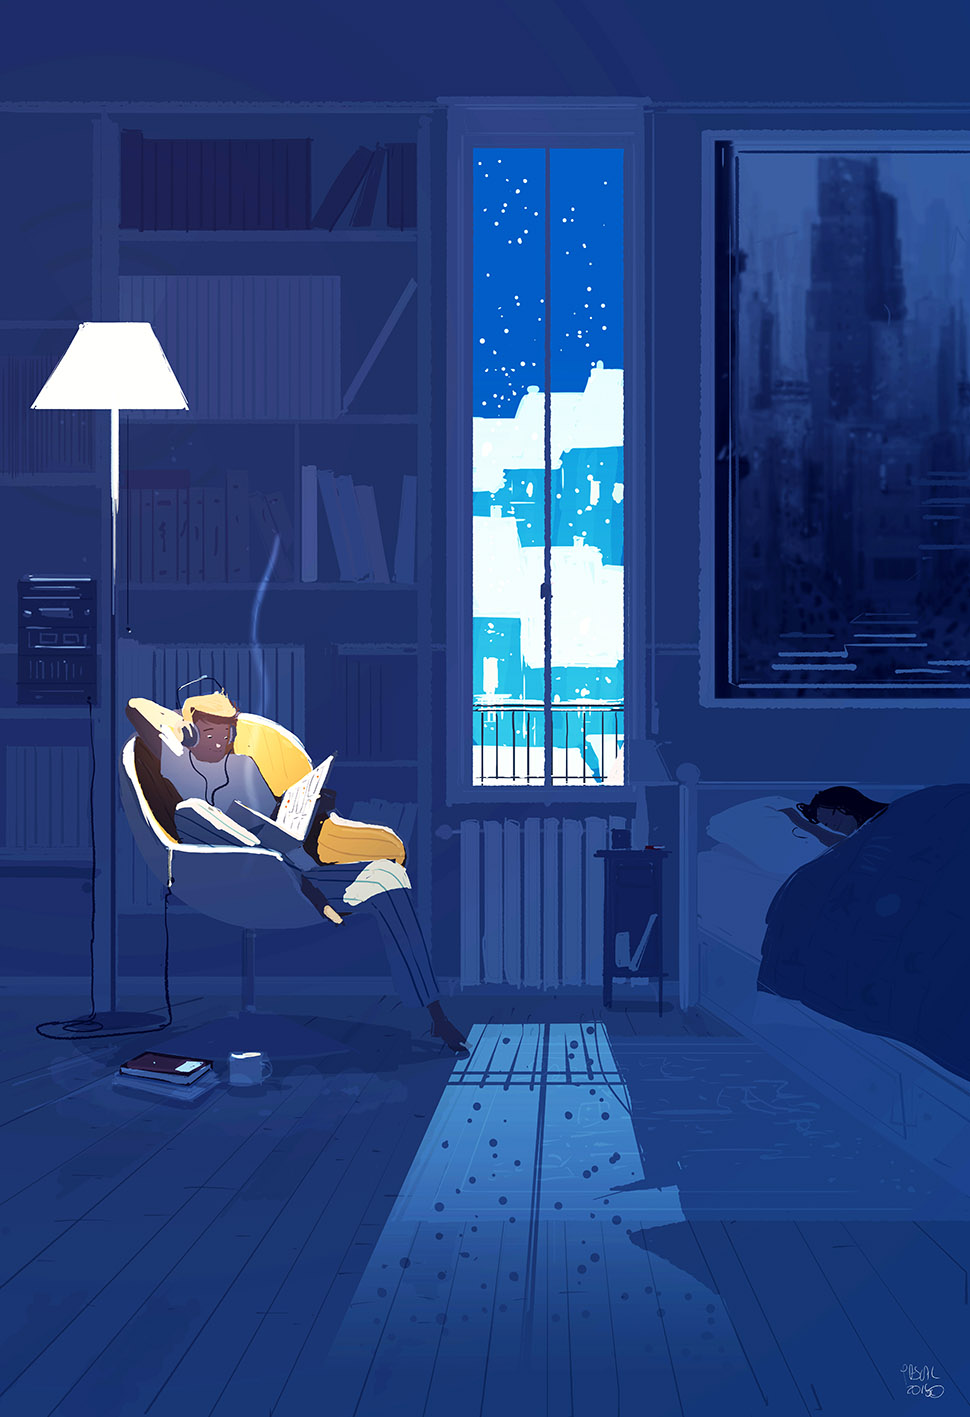 Midnight reading by pascalcampion on deviantart for Sleeping with window open in winter